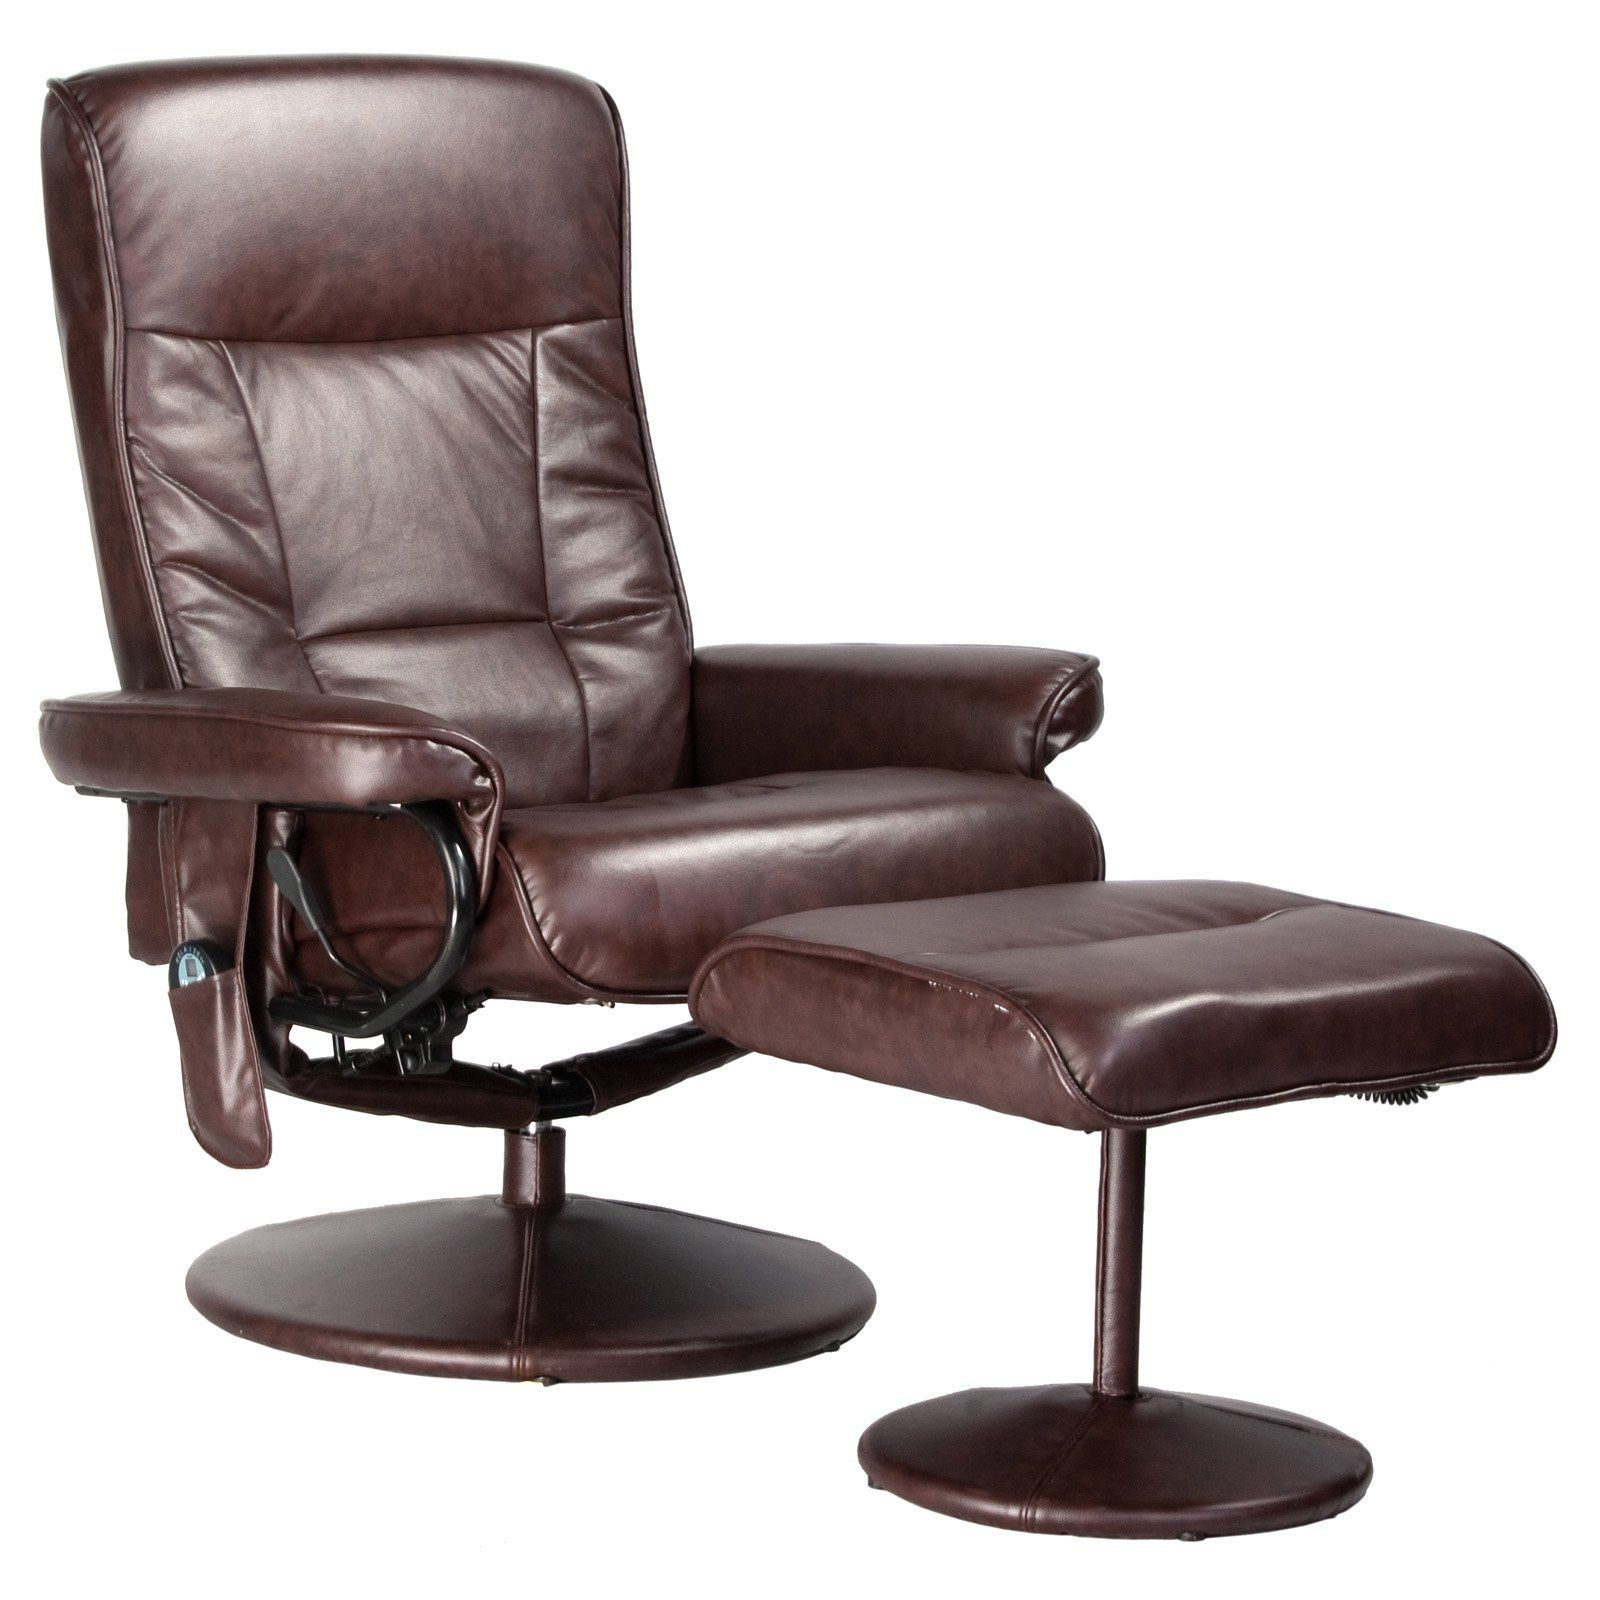 Comfort Products Relaxzen 8-Motor Massage Recliner with Heat | from hayneedle.com